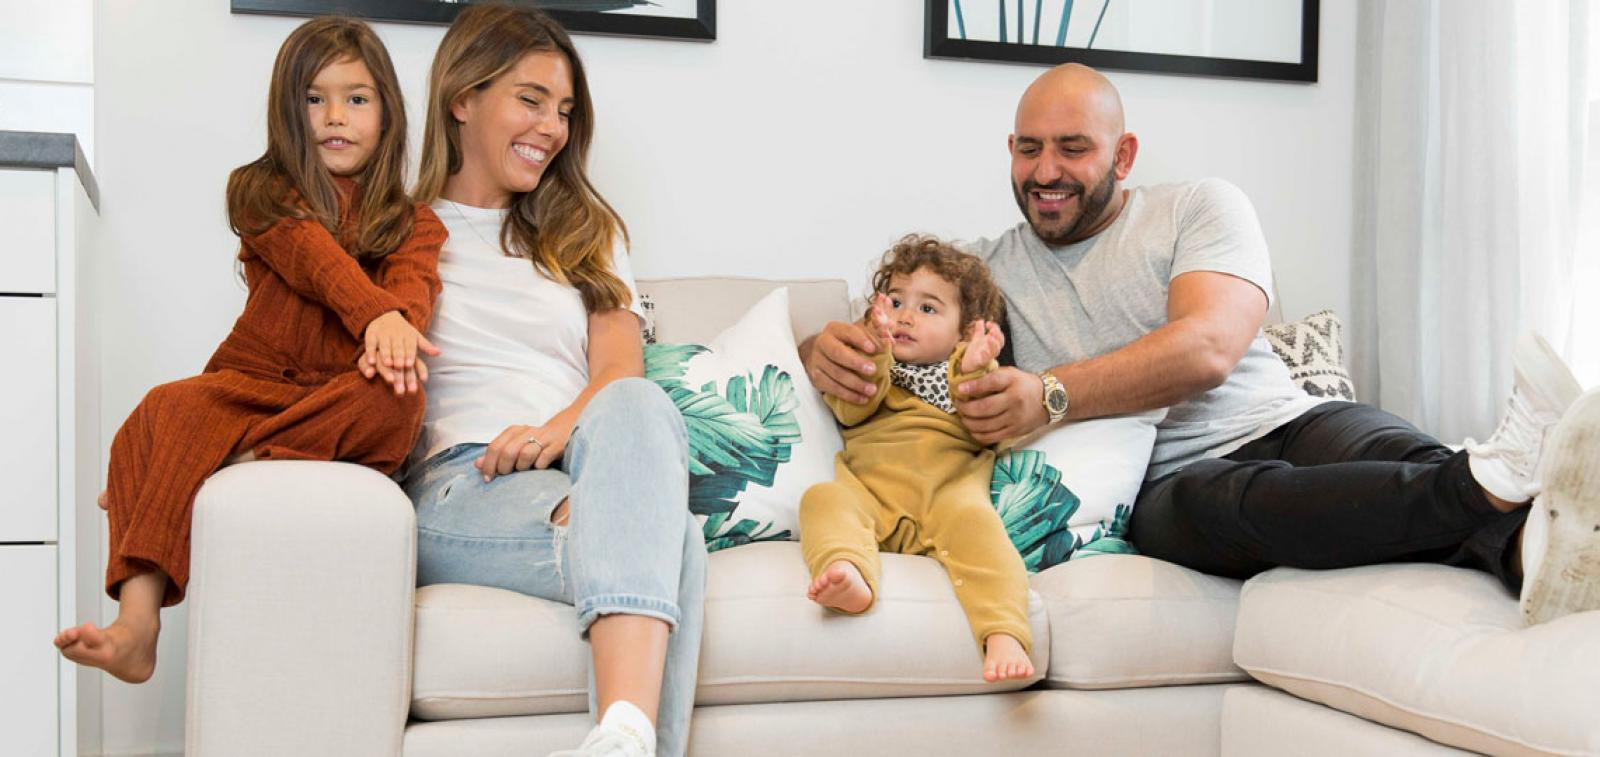 A family enjoying their new shared ownership home.